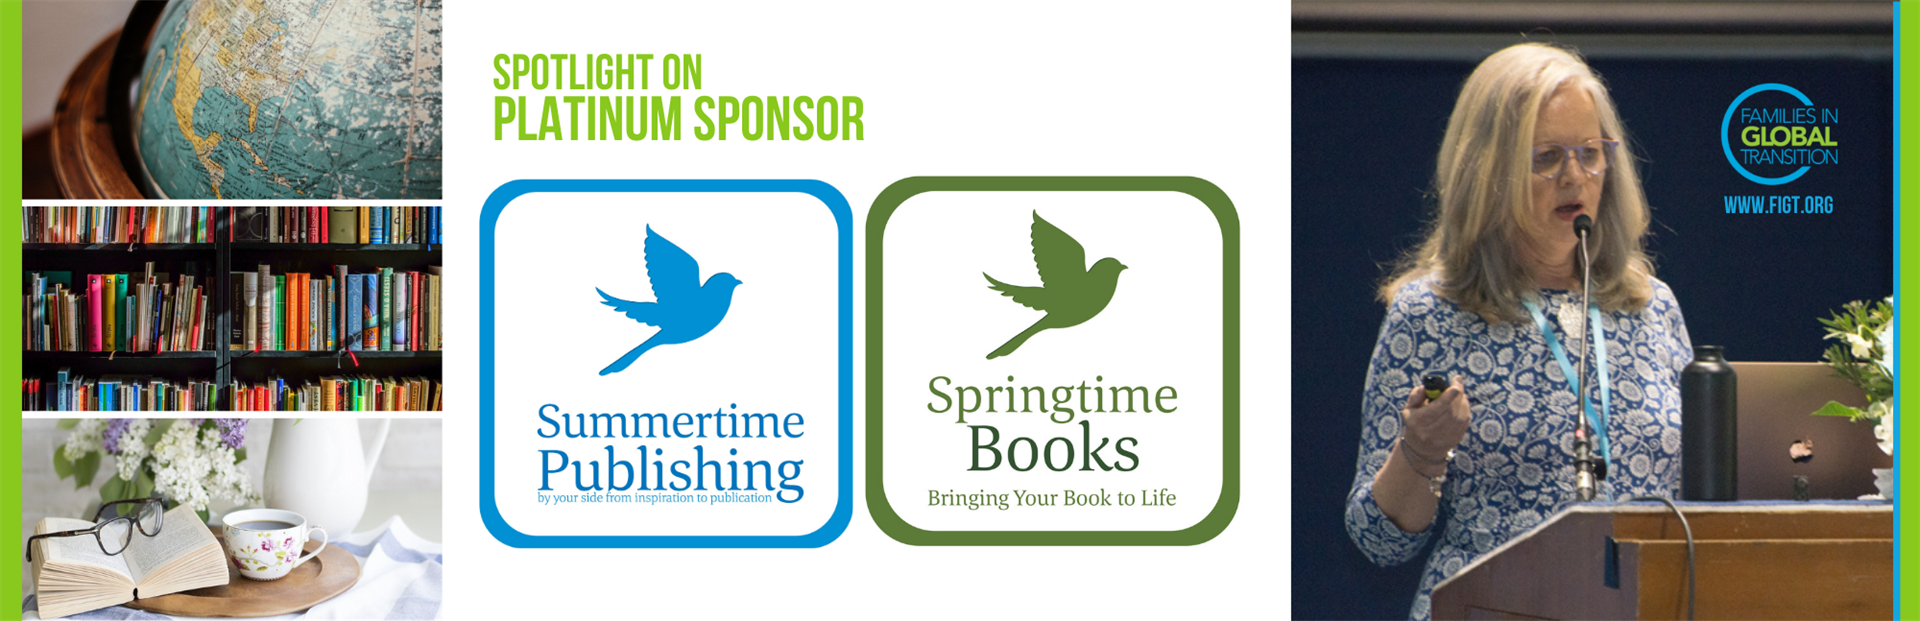 FIGT Platinum sponsor Summertime Publishing and Springtime Books